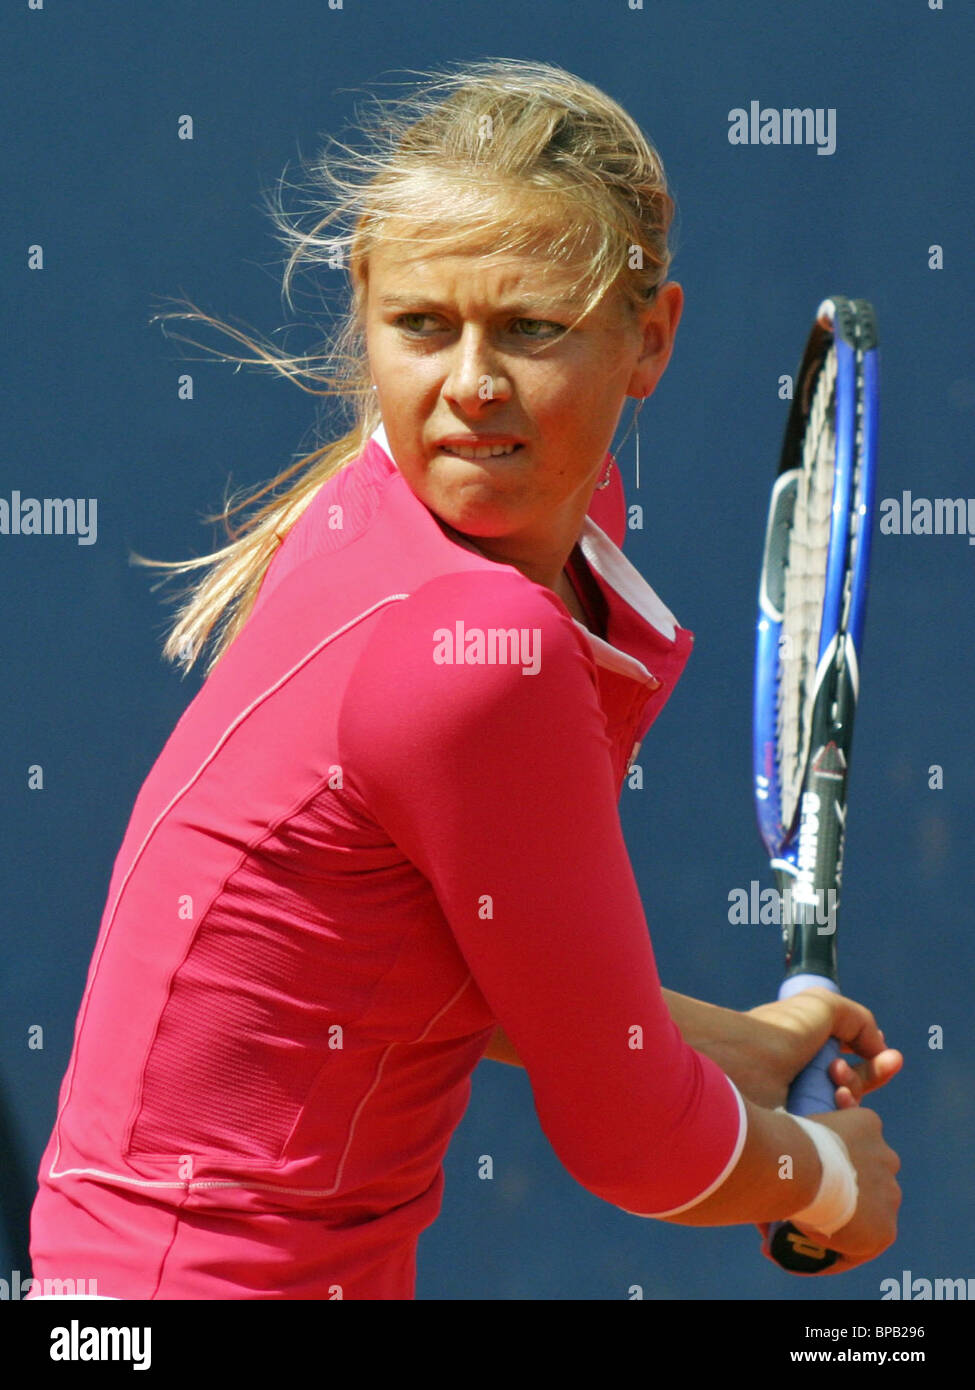 Maria Sharapova places in the quarter-finals of the German Open - Stock Image